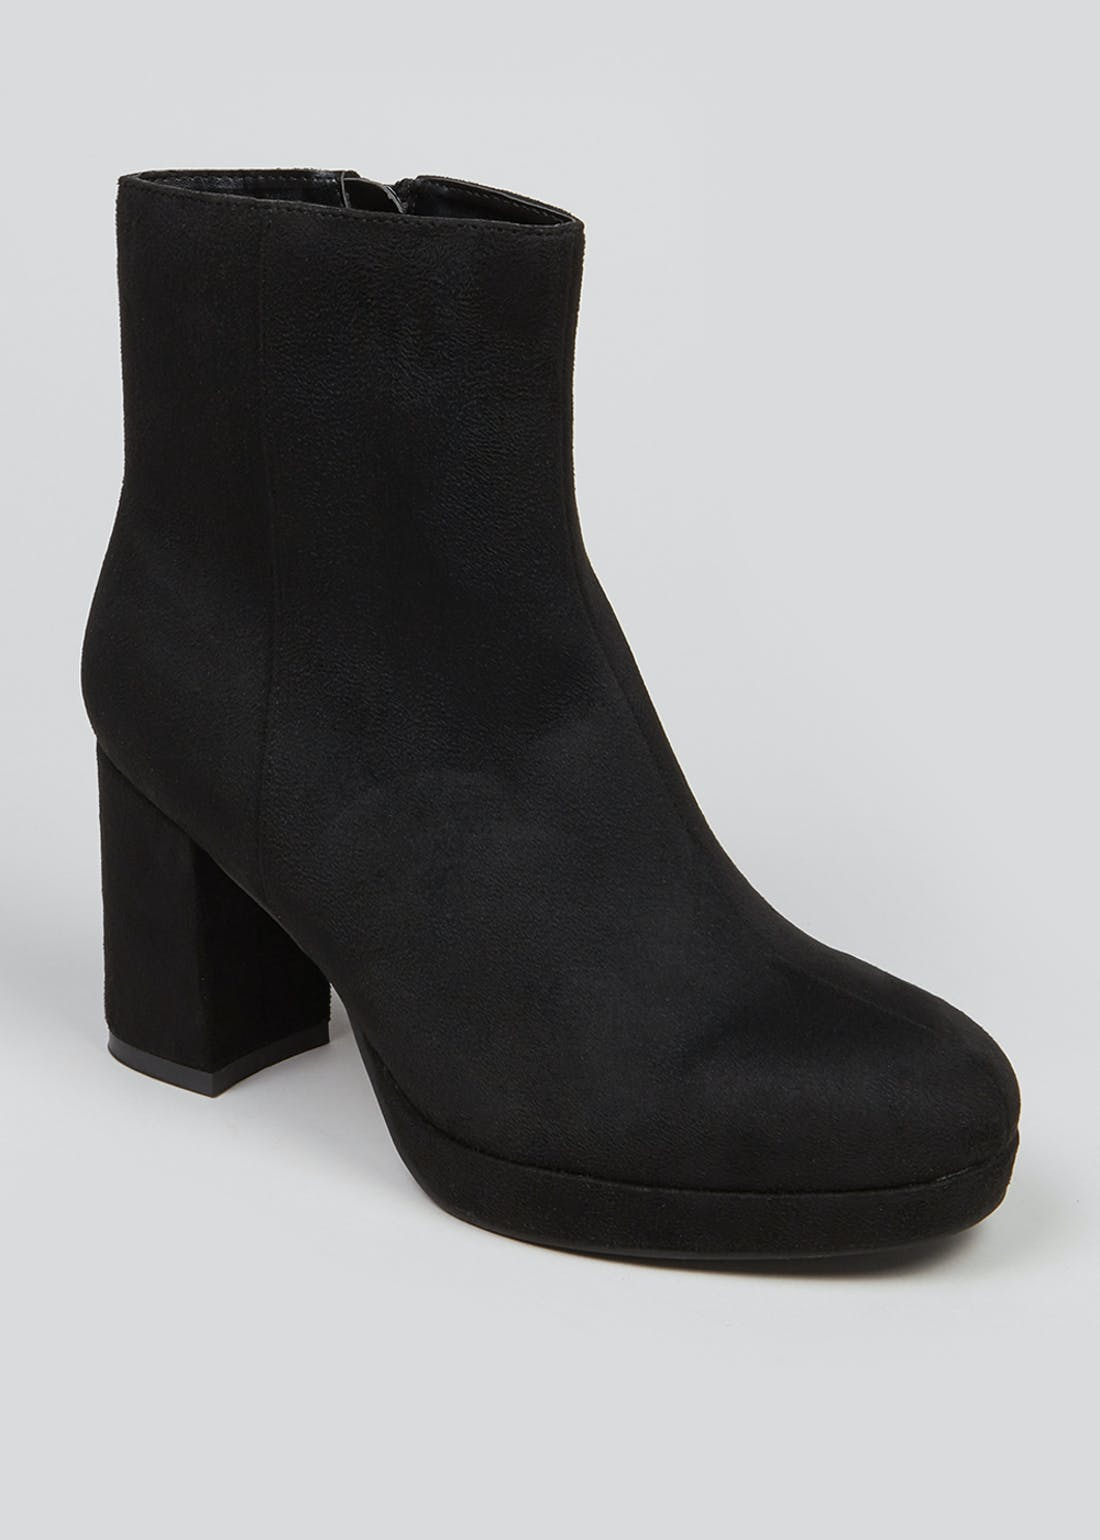 Wide Fit Black Suedette Boots